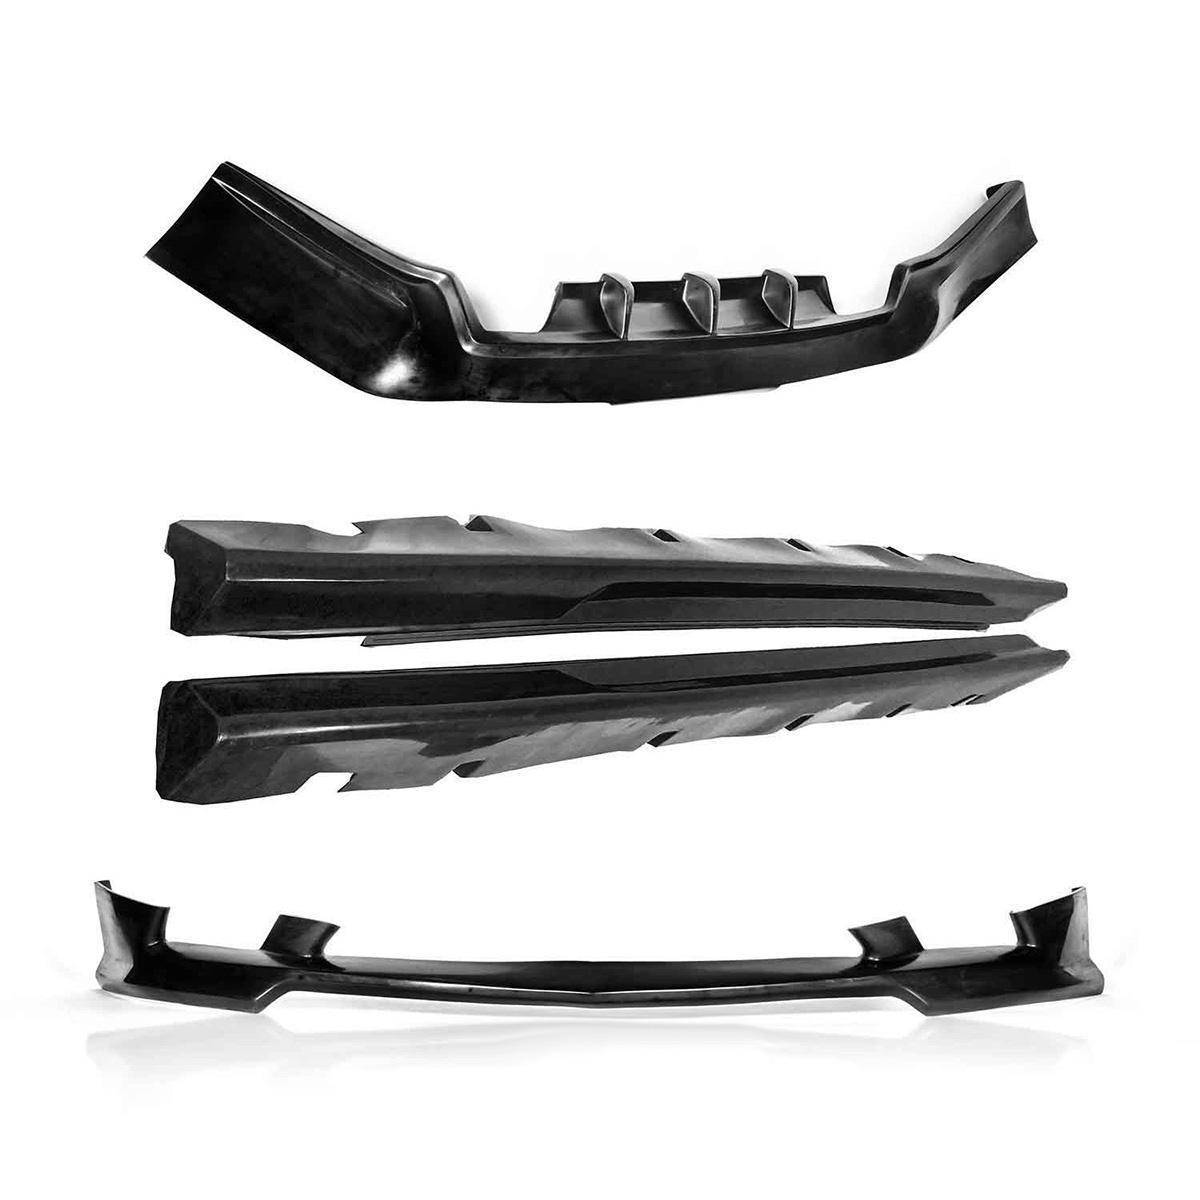 Dodge Charger 2011-2013 Premier Style 4 Piece Polyurethane Full Body Kit